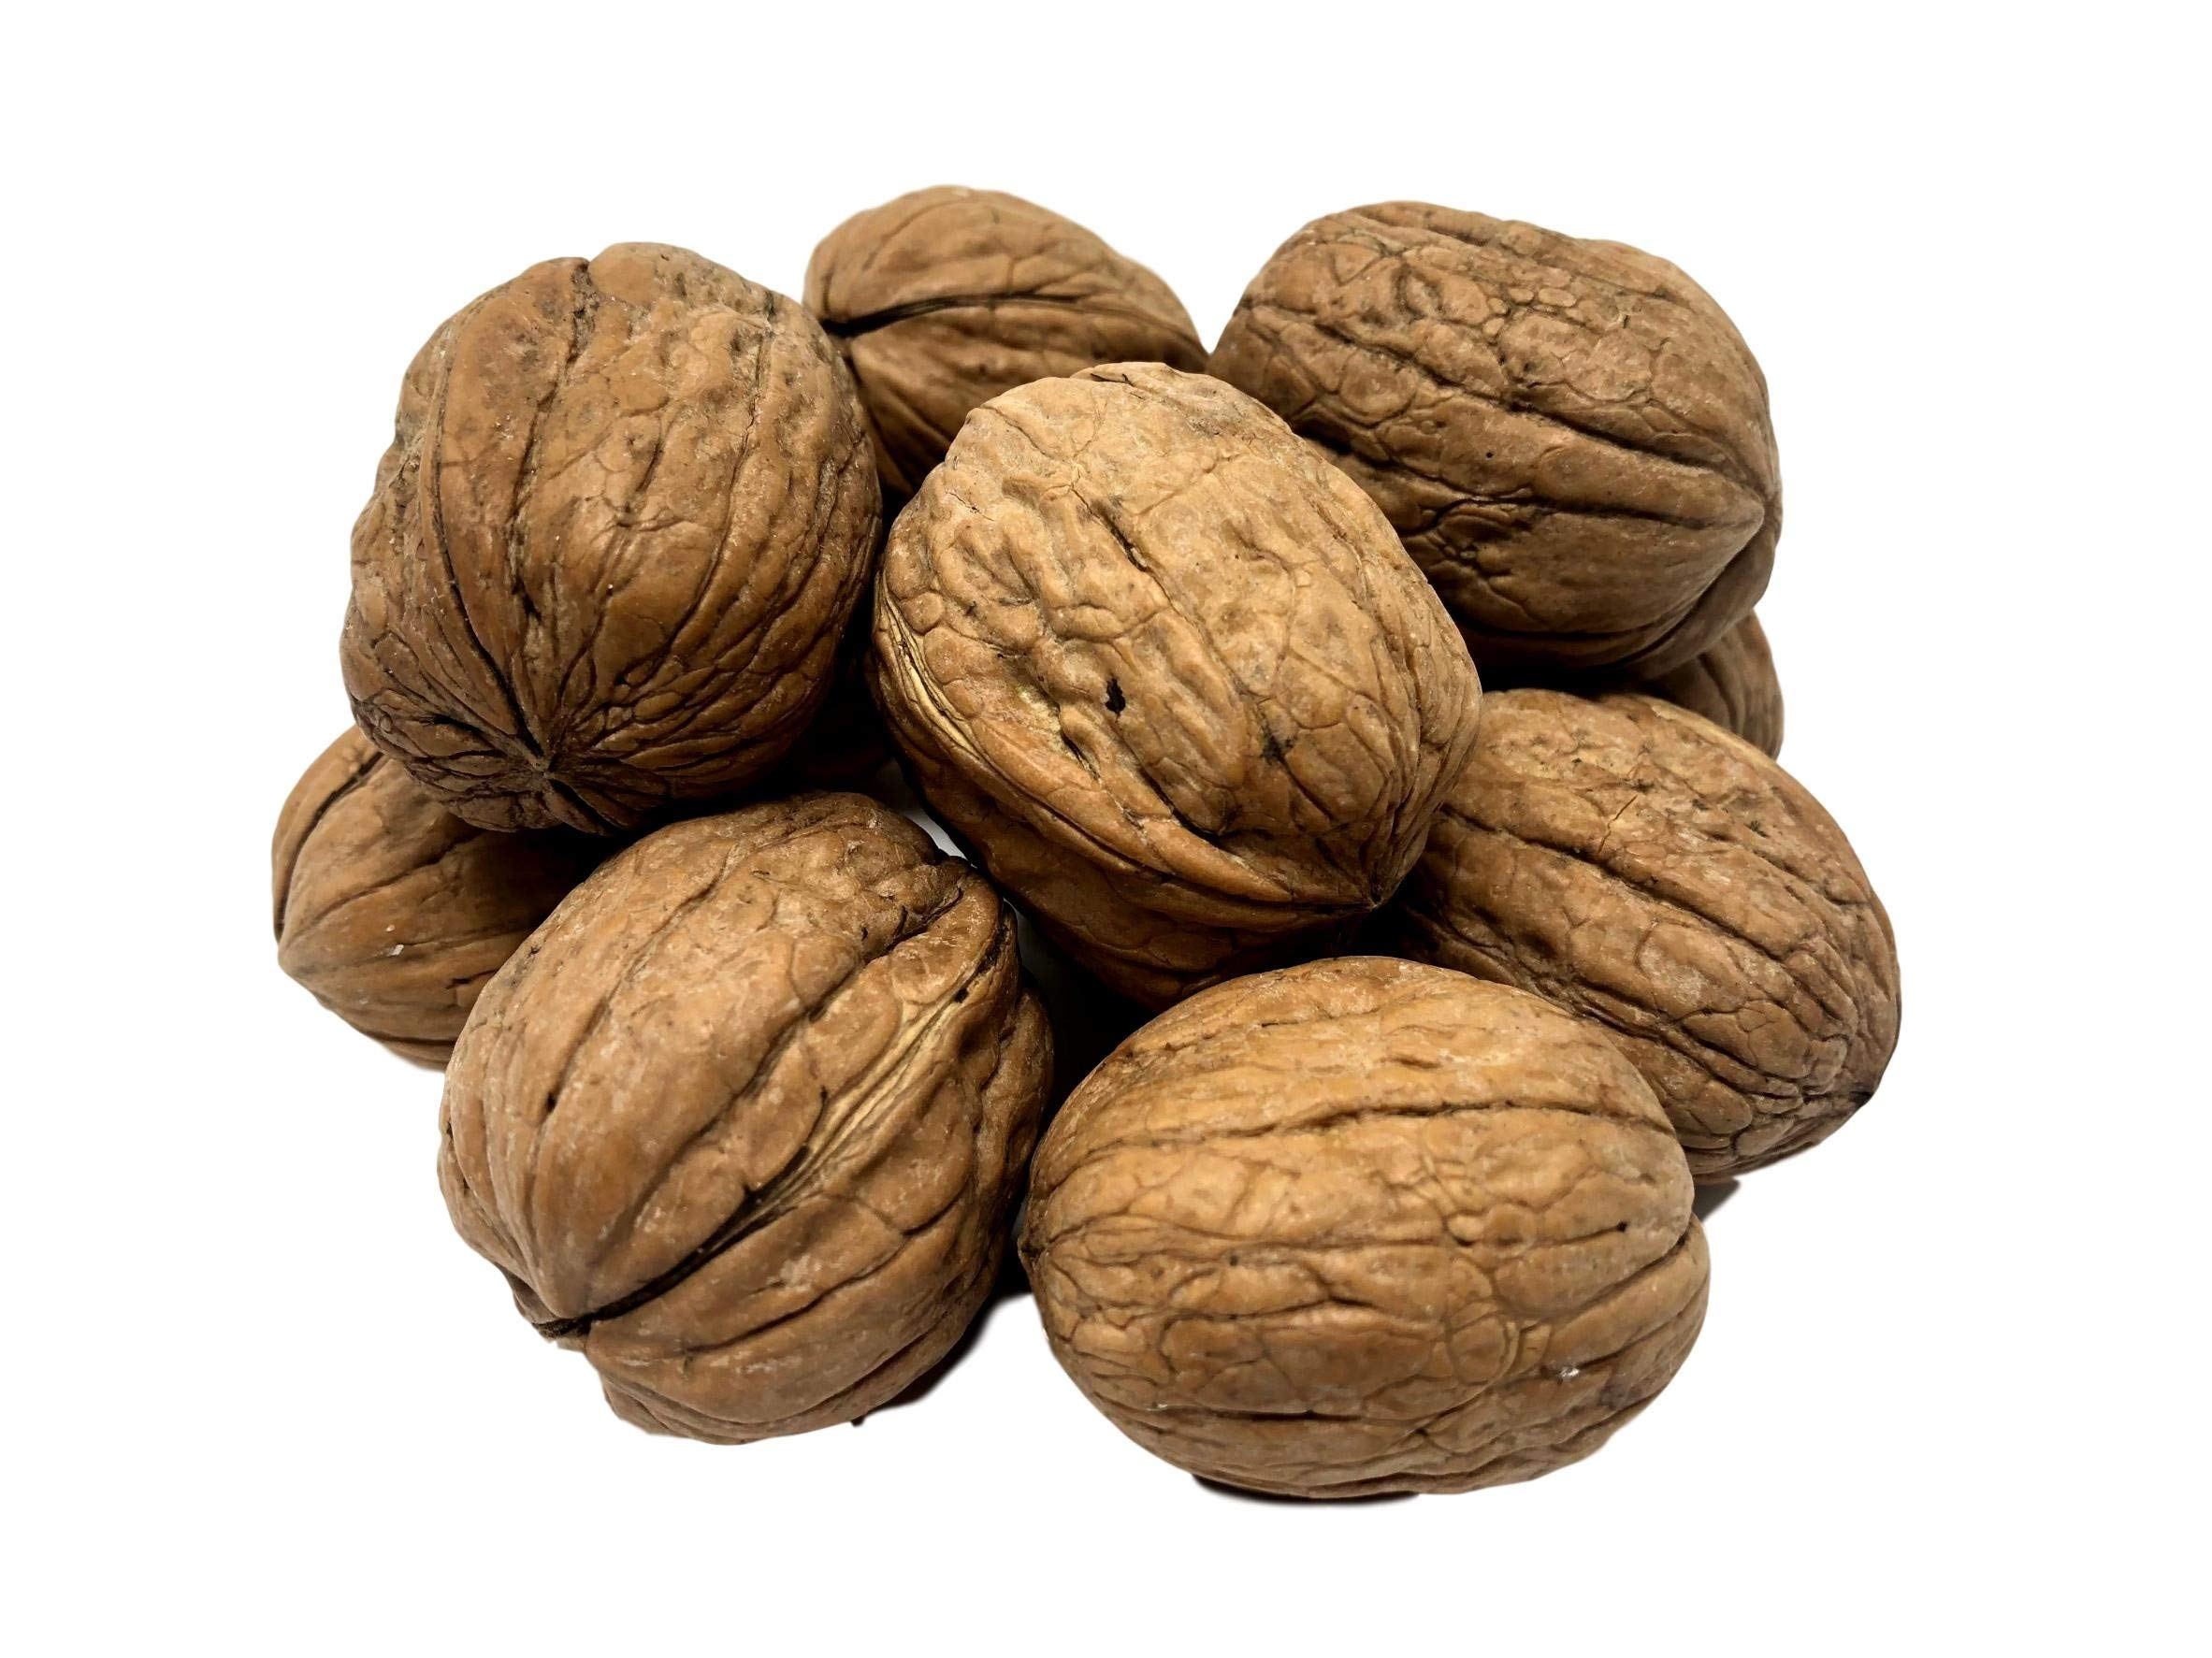 NUTS U.S. - Walnuts In Shell | Grown and Packed in California | Jumbo Size and Chandler Variety | Fresh Buttery Taste and Easy to Crack | Non-GMO and Raw Walnuts in Resealable Bags!!! (1 LB) by NUTS - U.S. - HEALTH IN EVERY BITE !